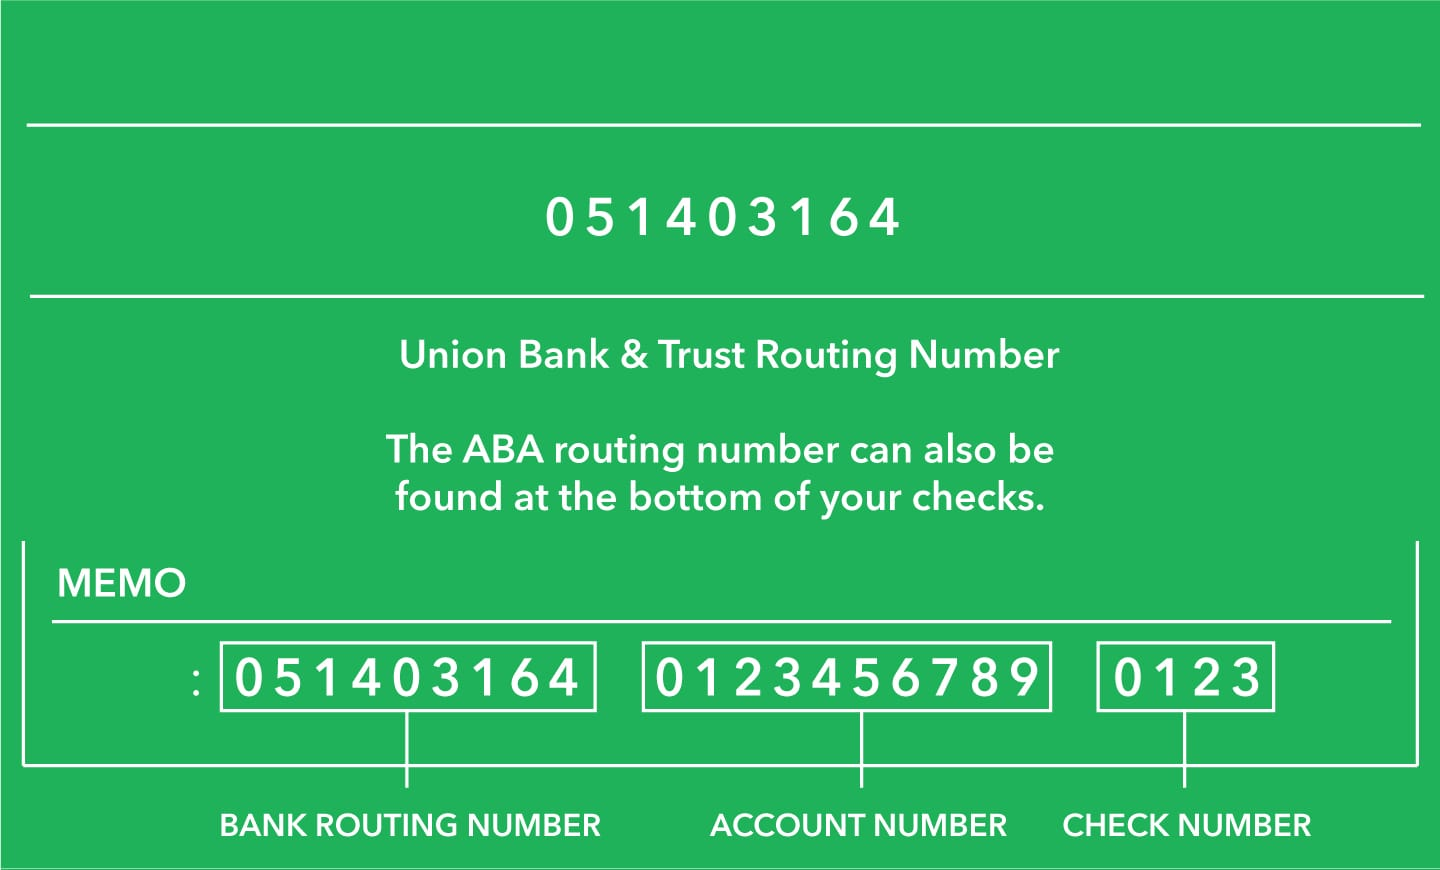 Atlantic Union Bank & Trust routing number